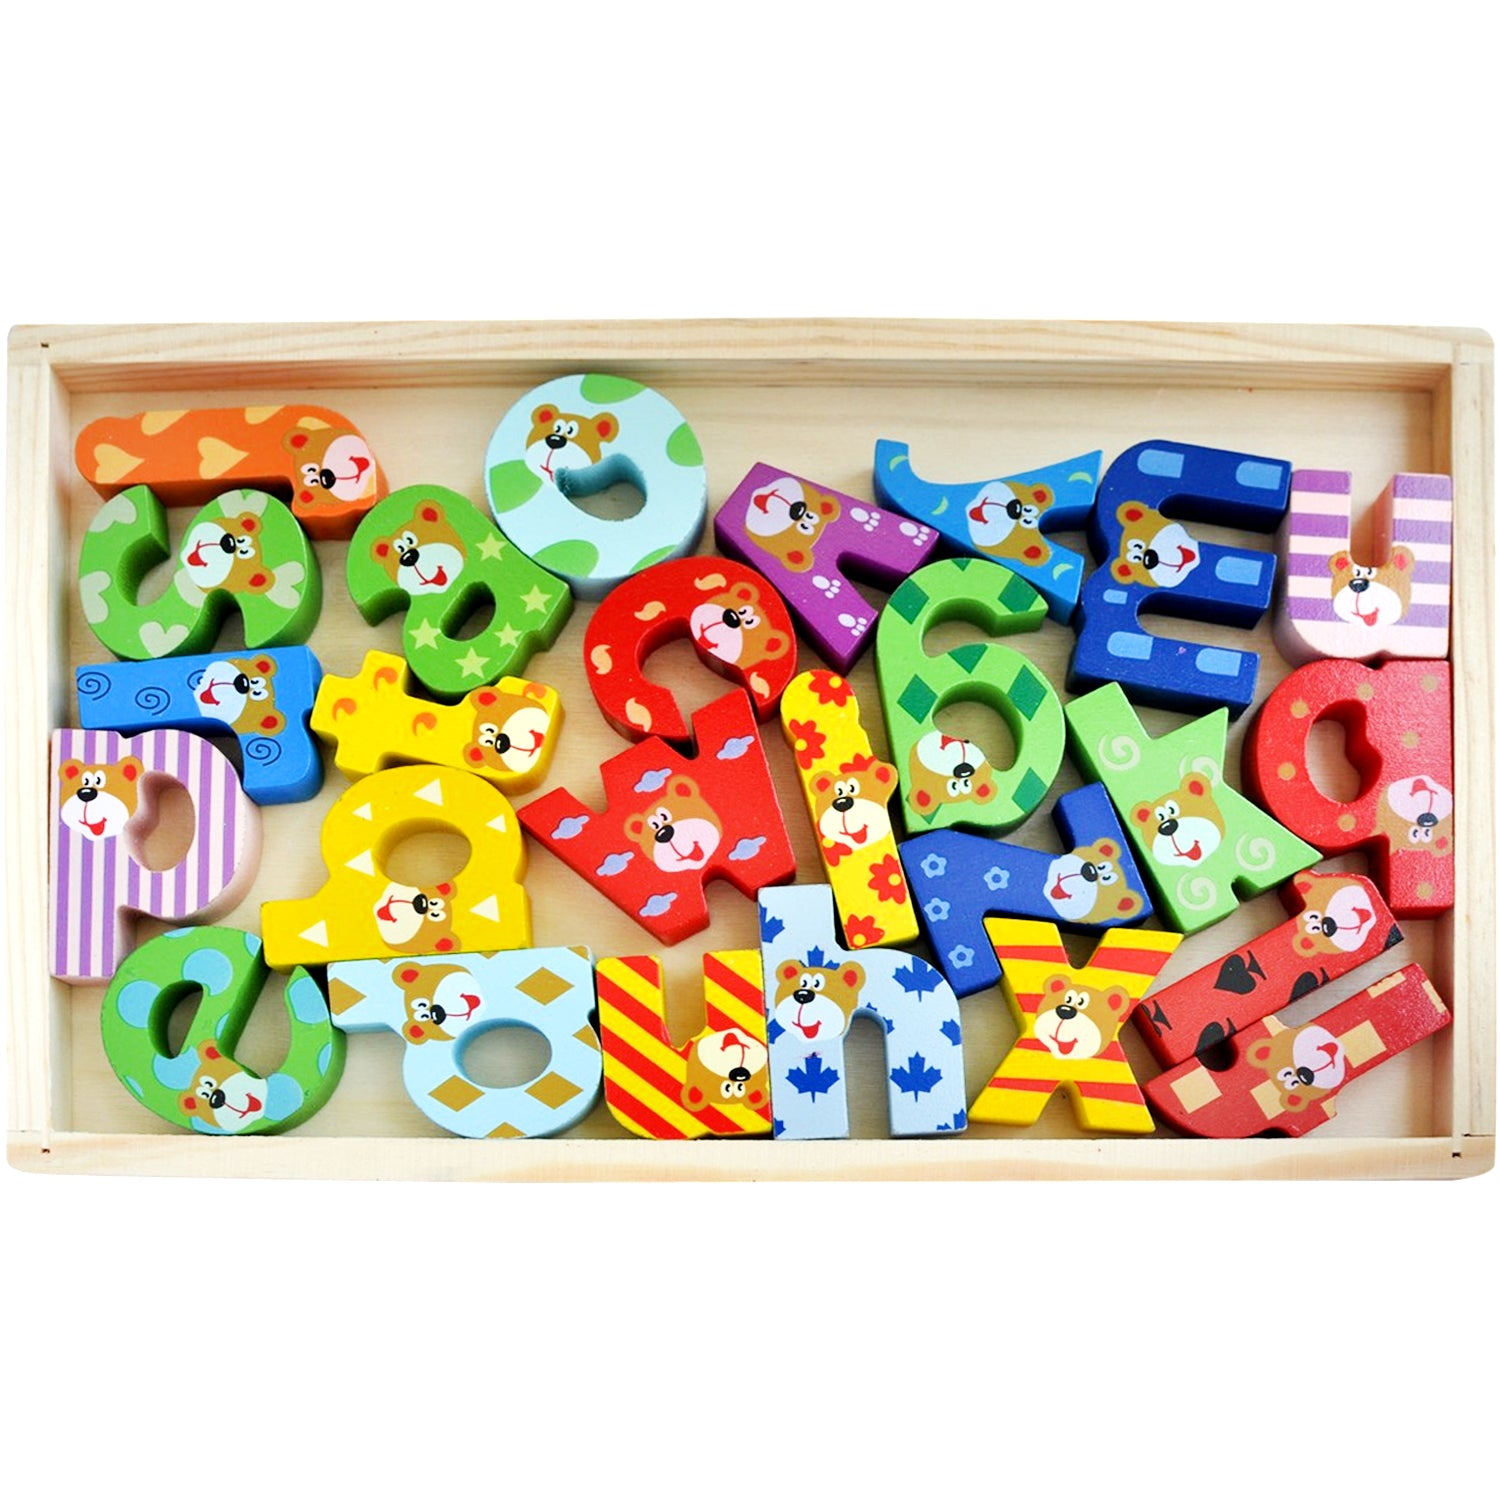 Trinkets & More Premium ABC Learning Blocks